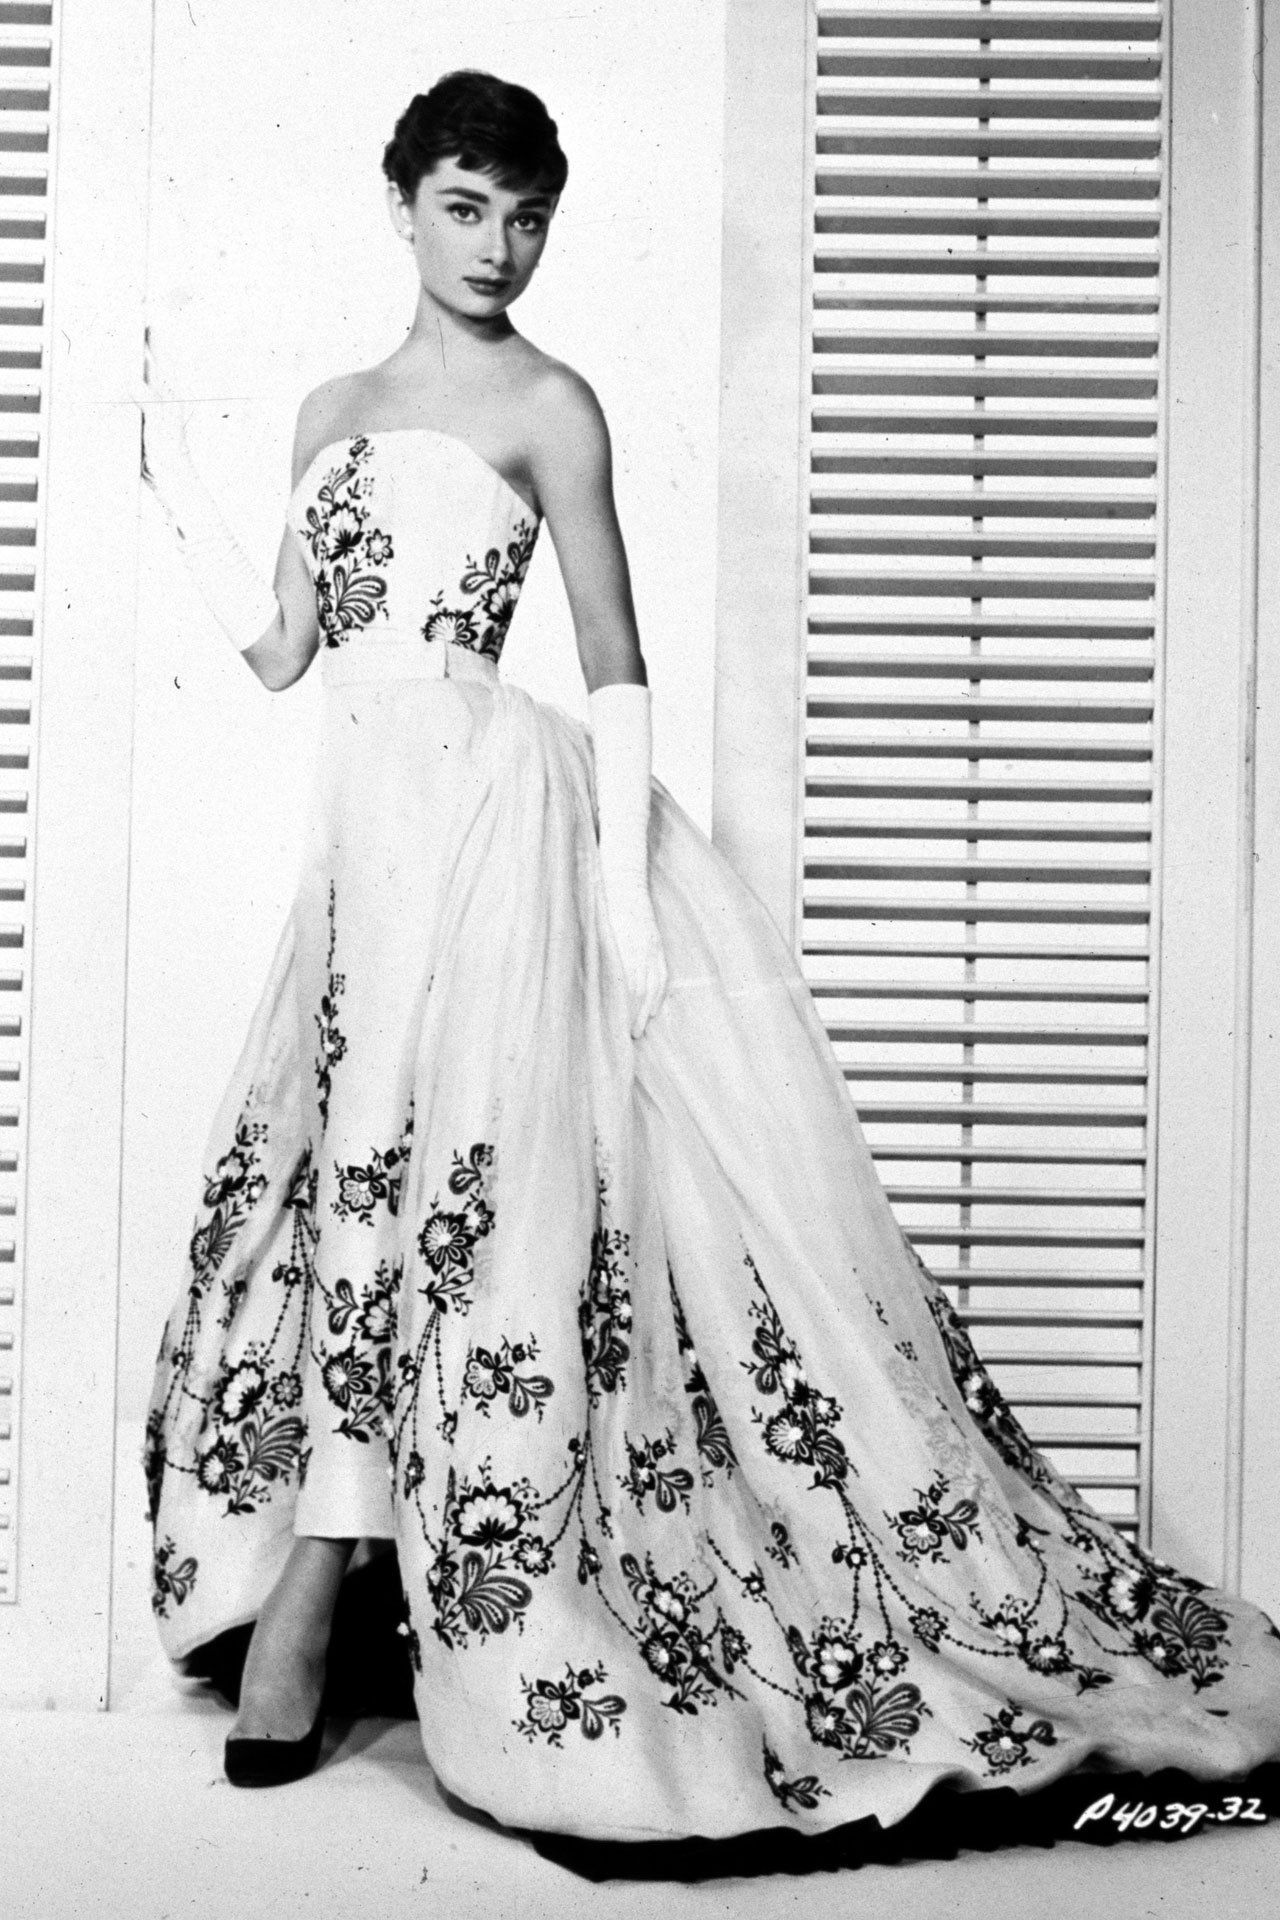 Givenchy Evening Dress Worn By Audrey Hepburn In Sabrina 1954 Costume Design Credited To Edith Head Fr Sabrina Dress Audrey Hepburn Style Beautiful Dresses